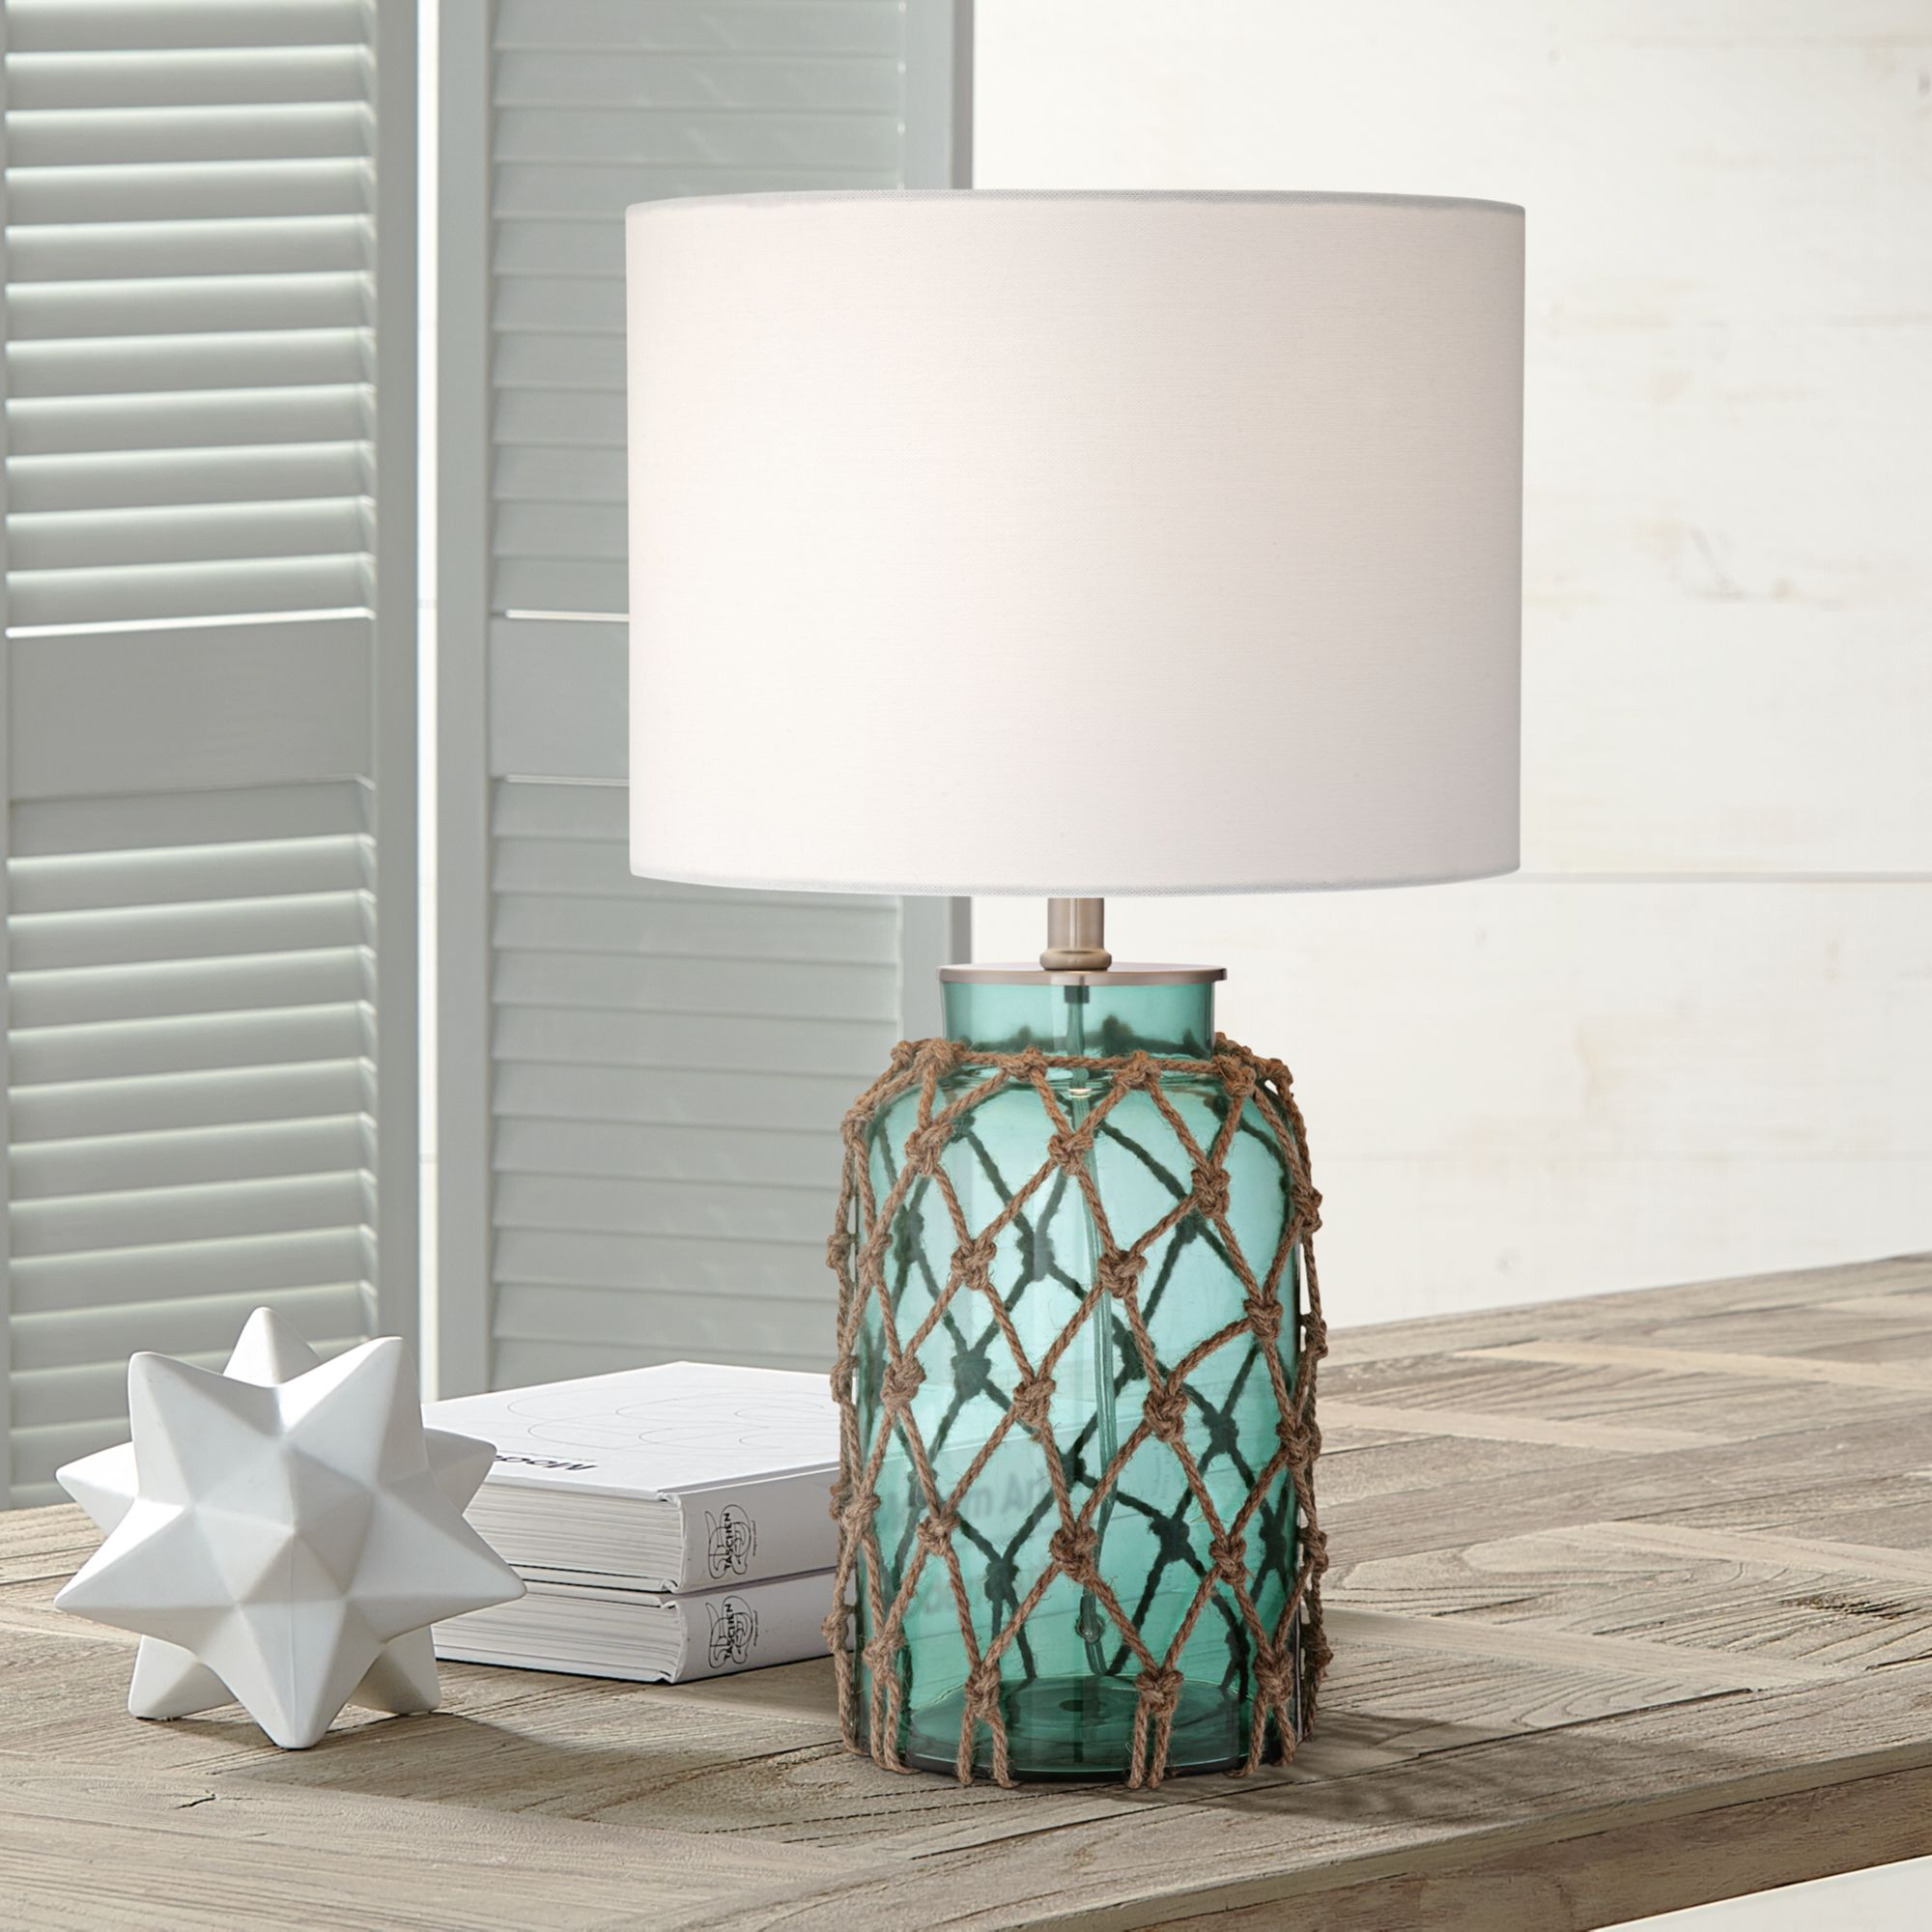 lighting nautical accent table lamp coastal blue green glass metal rope off white drum shade for living room family bedroom espresso color coffee ikea box shelves contemporary